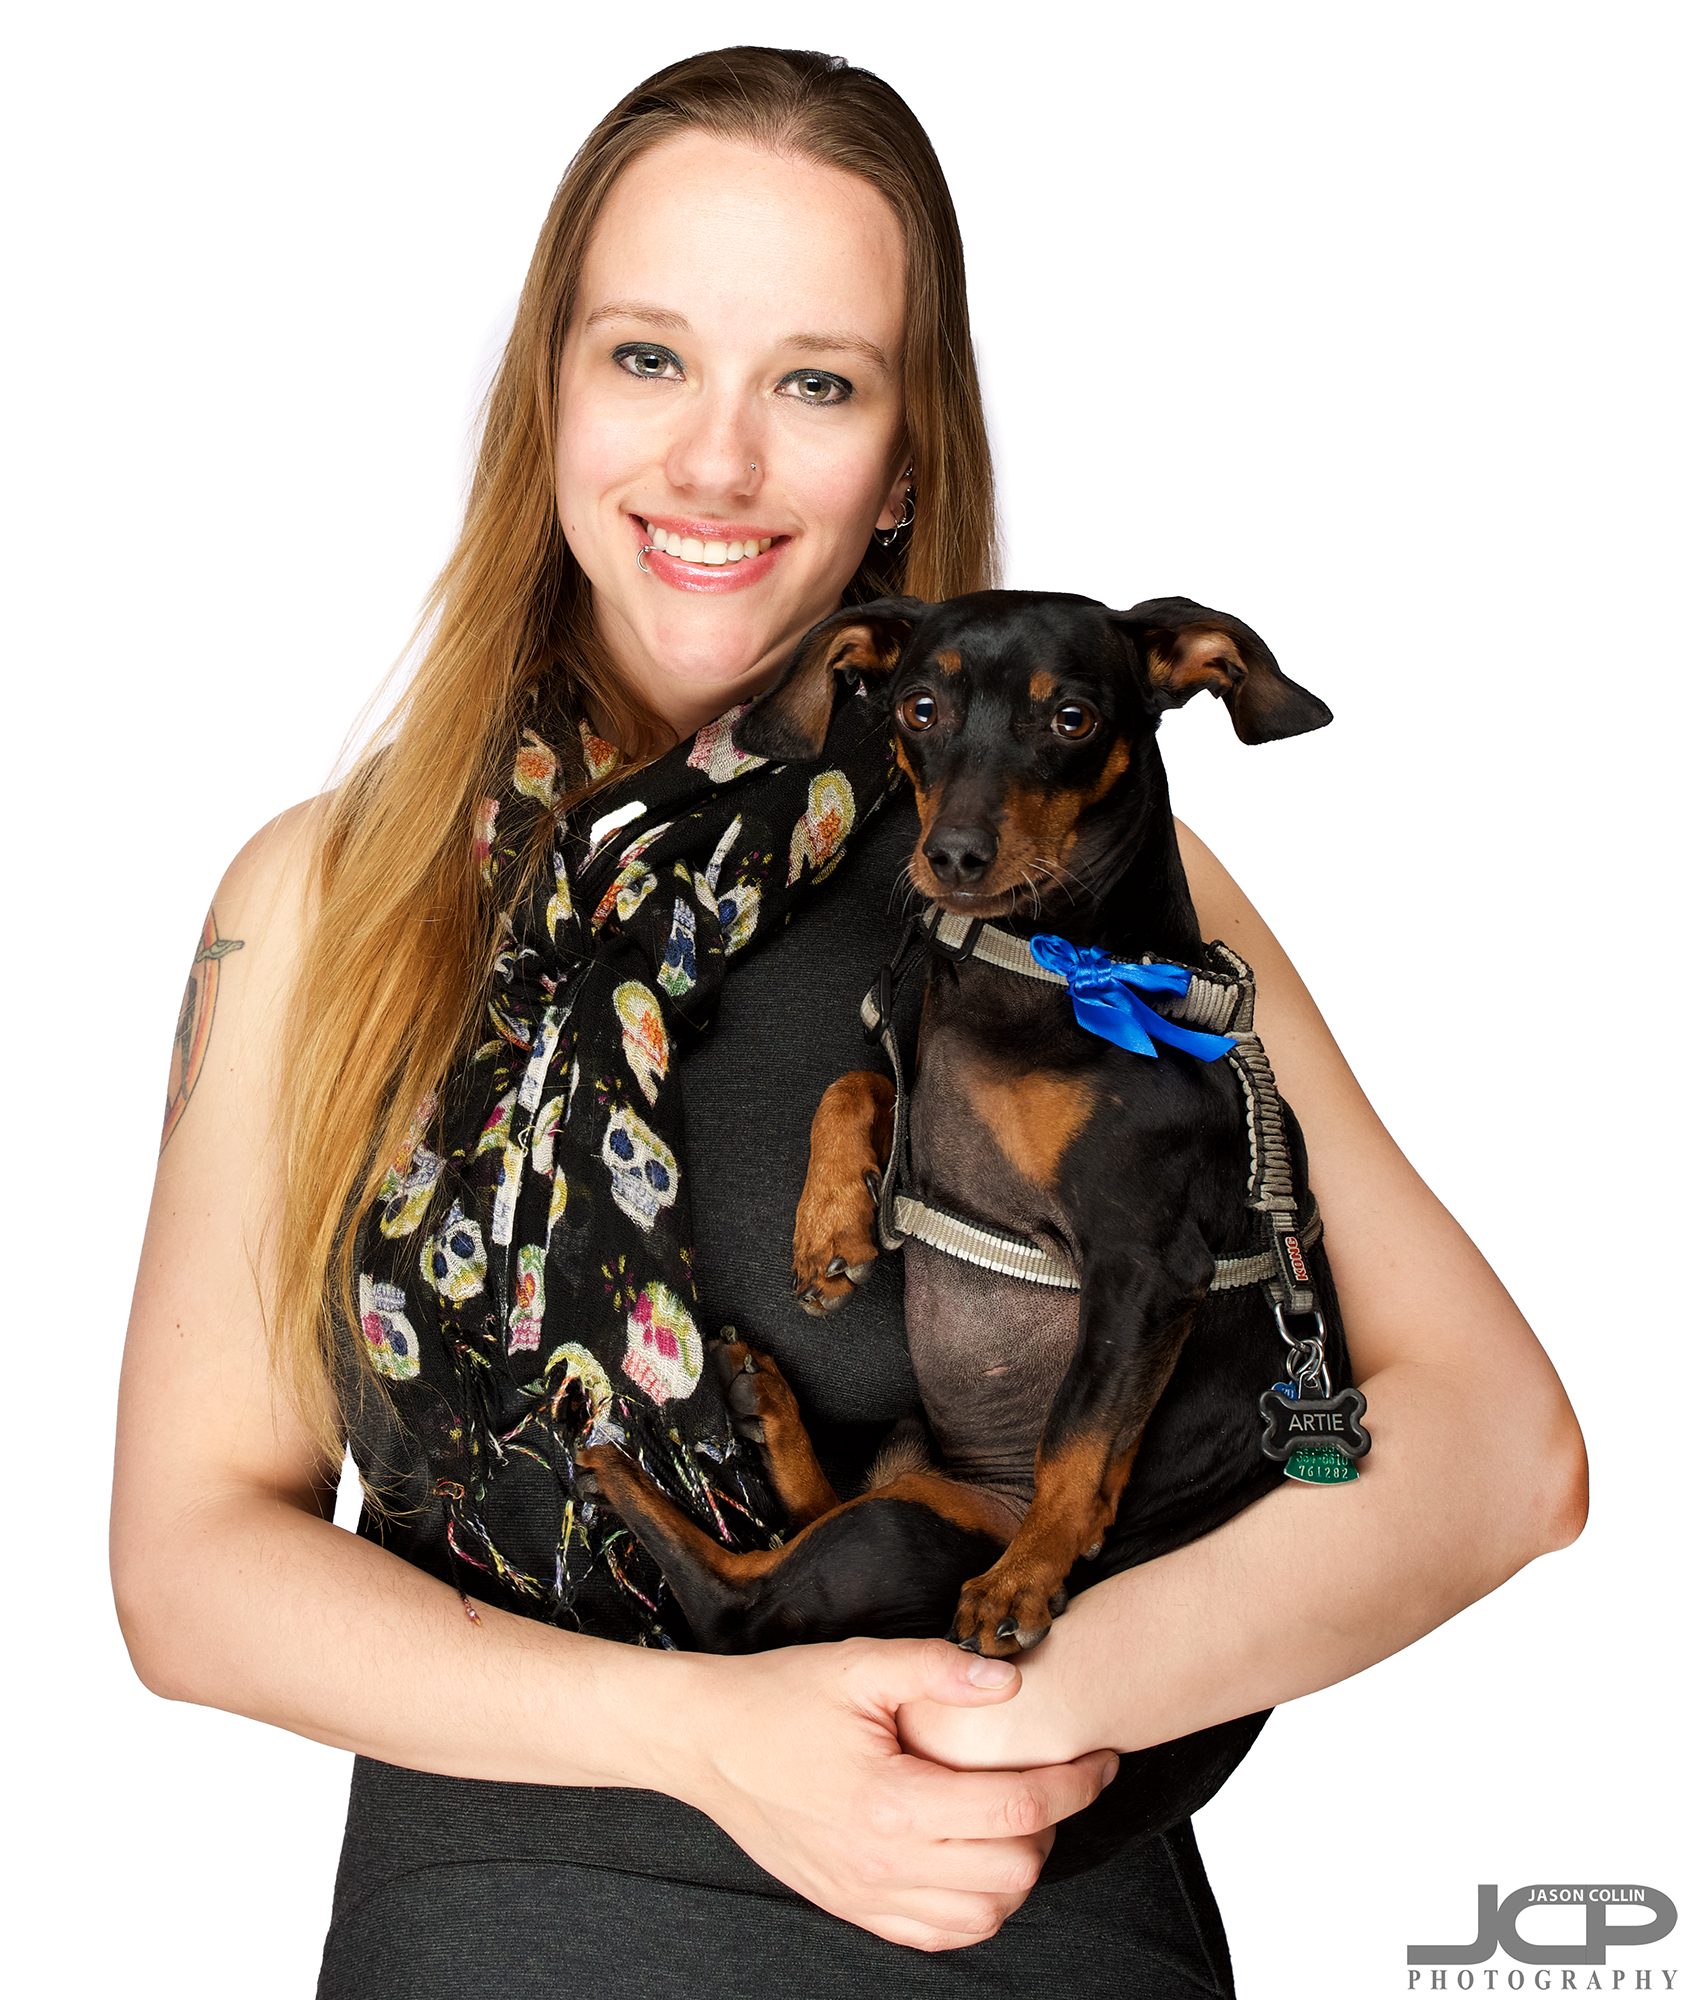 Clamshell lighting can be used for 3/4 portraits as well, even when holding a small dog like Artie who turned 8 years old this very day!